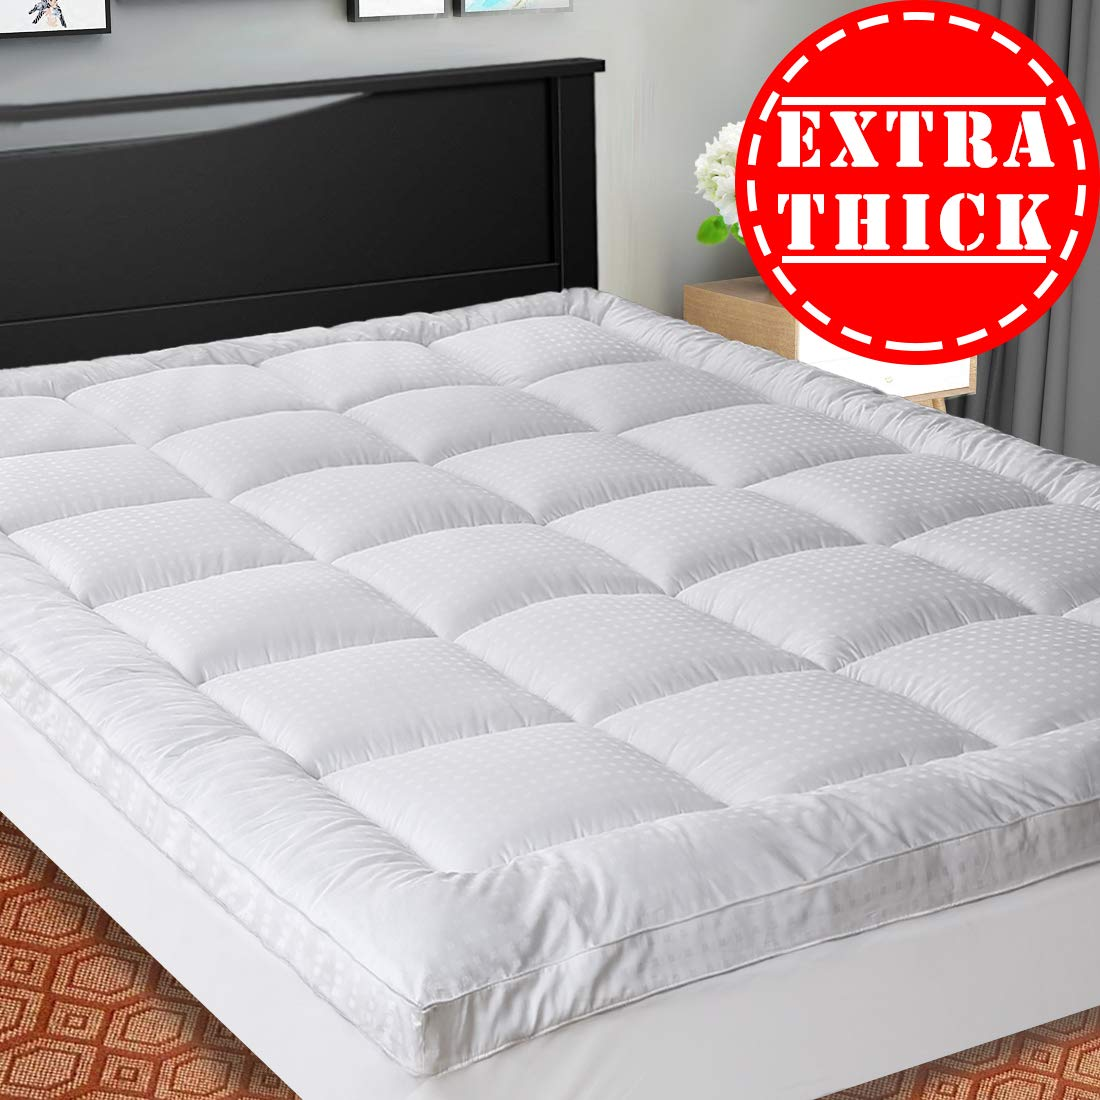 SOPAT Extra Thick Mattress Topper (Queen),Cooling Mattress Pad Cover,Pillow Top Construction (8-21Inch Deep Pocket),Double Border,Down Alternative Fill,Breathable by SOPAT